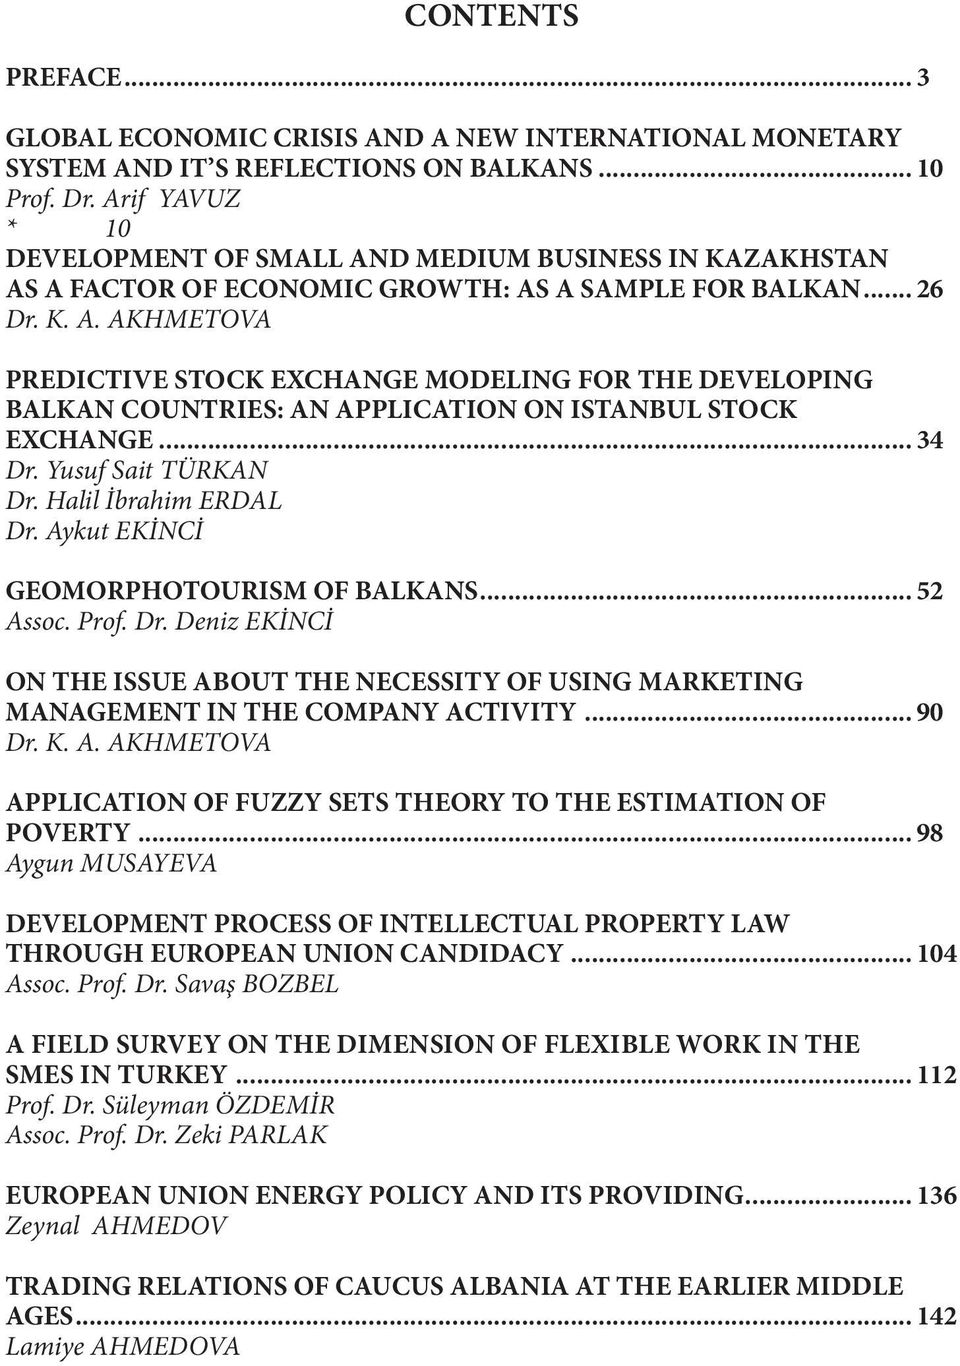 .. 34 Dr. Yusuf Sait TÜRKAN Dr. Halil İbrahim ERDAL Dr. Aykut EKİNCİ GEOMORPHOTOURISM OF BALKANS... 52 Assoc. Prof. Dr. Deniz EKİNCİ ON THE ISSUE ABOUT THE NECESSITY OF USING MARKETING MANAGEMENT IN THE COMPANY ACTIVITY.